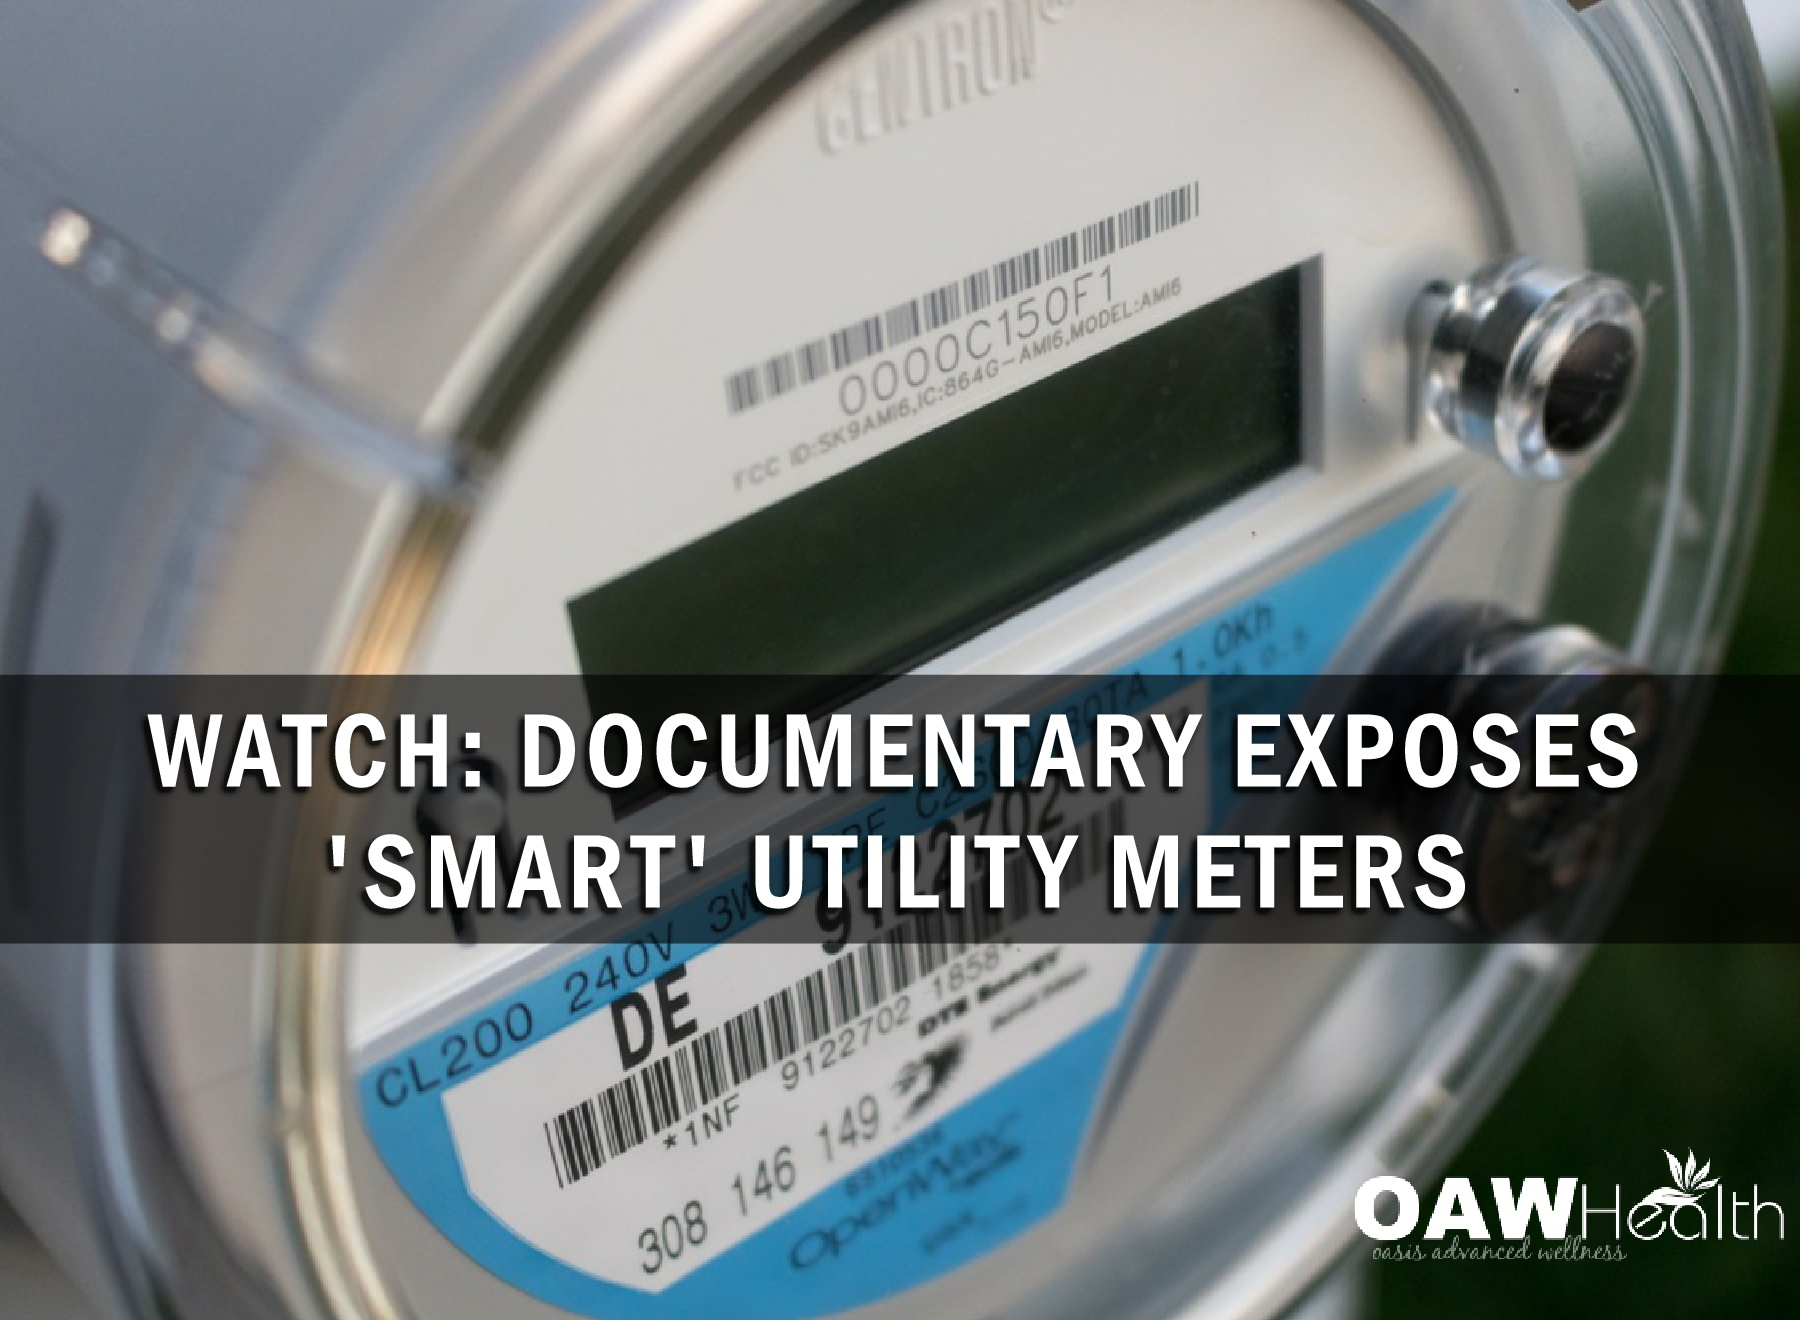 WATCH: Documentary Exposes 'Smart' Utility Meters